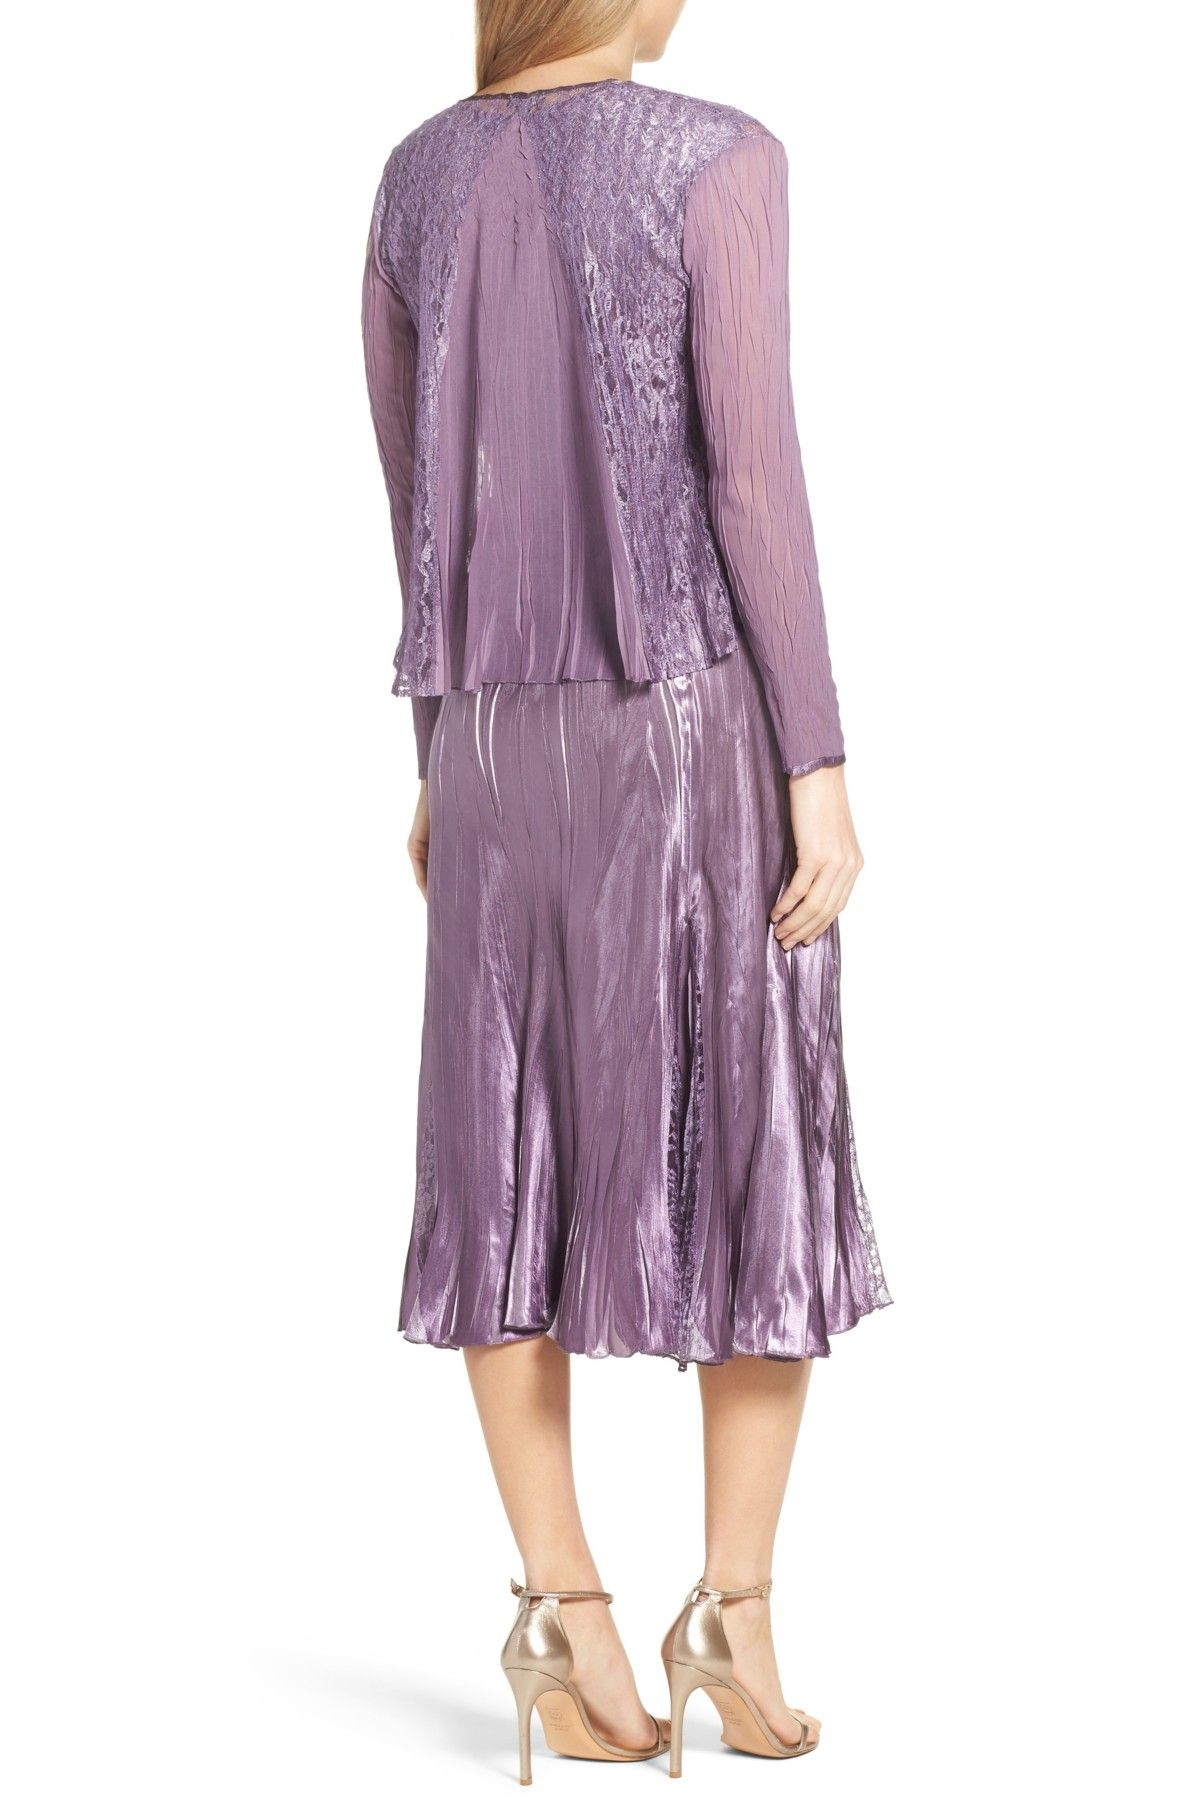 Mother of the bride wedding dresses nordstrom  ALine Dress with Jacket  Nordstrom Free shipping and Ships